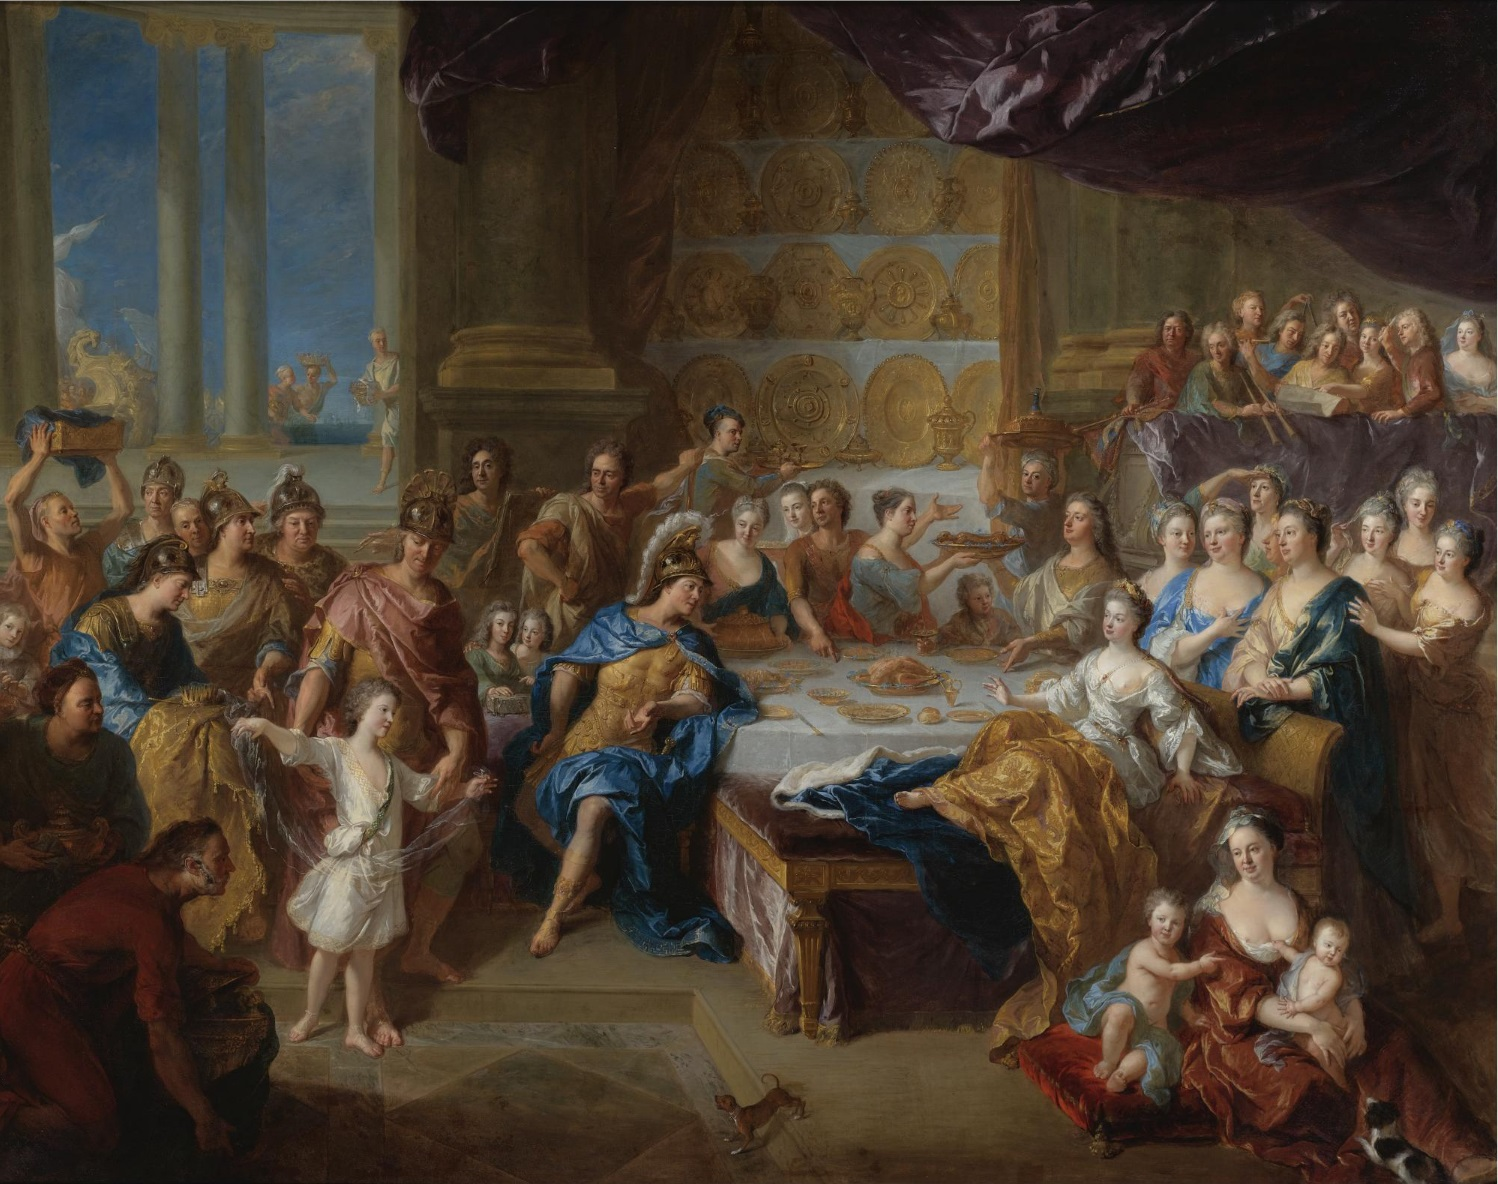 File:The Feast of Dido and Aeneas by François de Troy, 1704.jpg